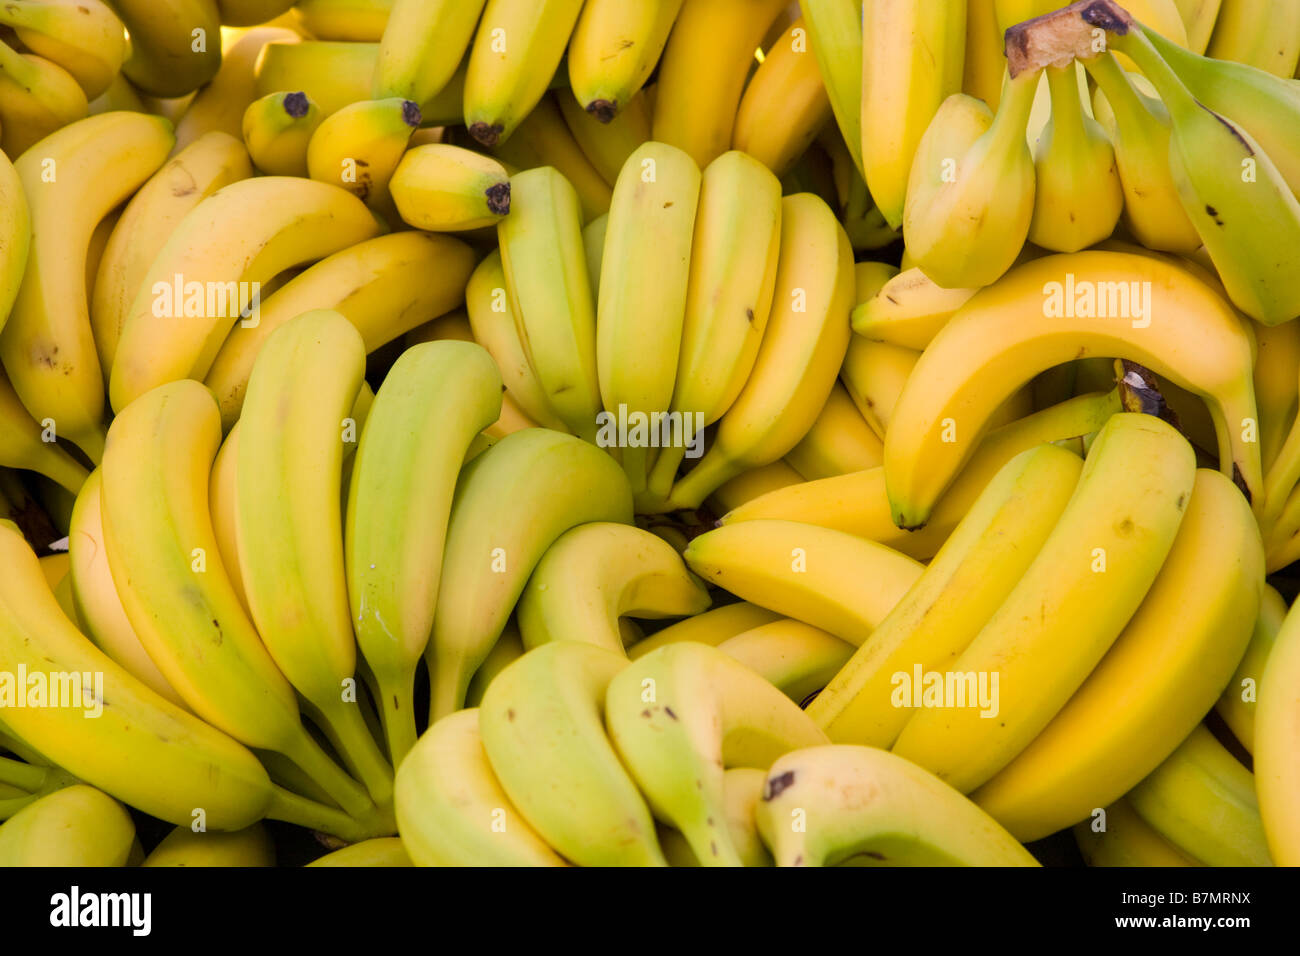 Bunches of bananas - Stock Image